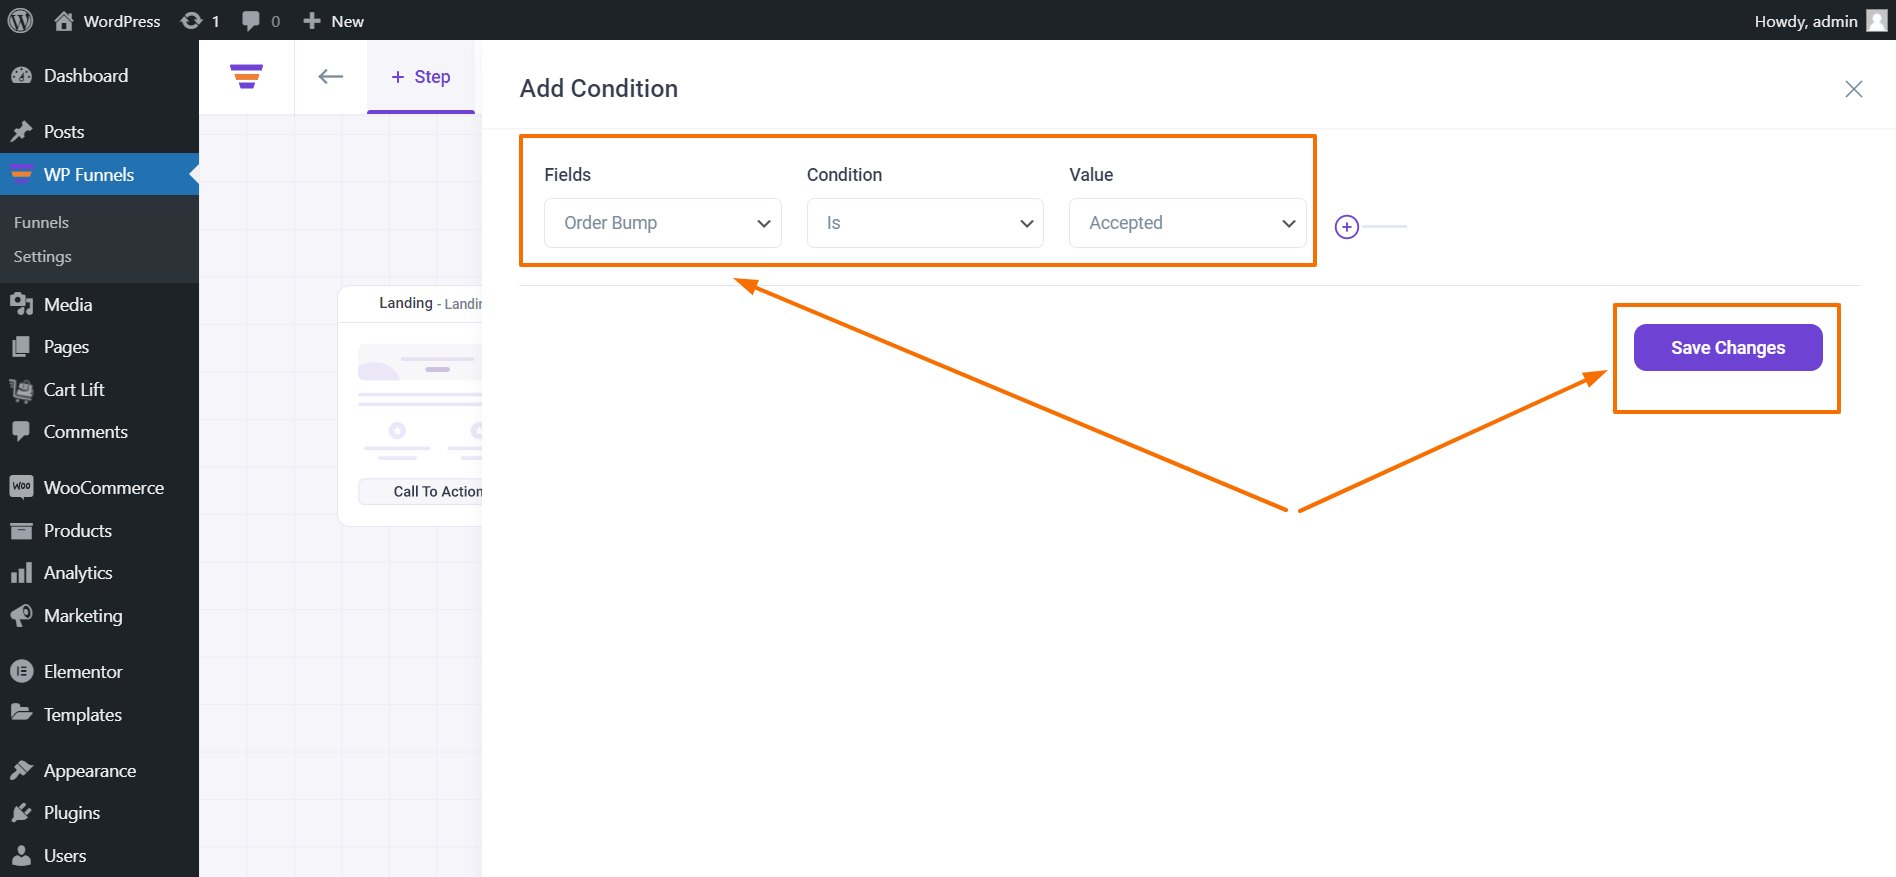 WP Funnels Conditional Node Rules